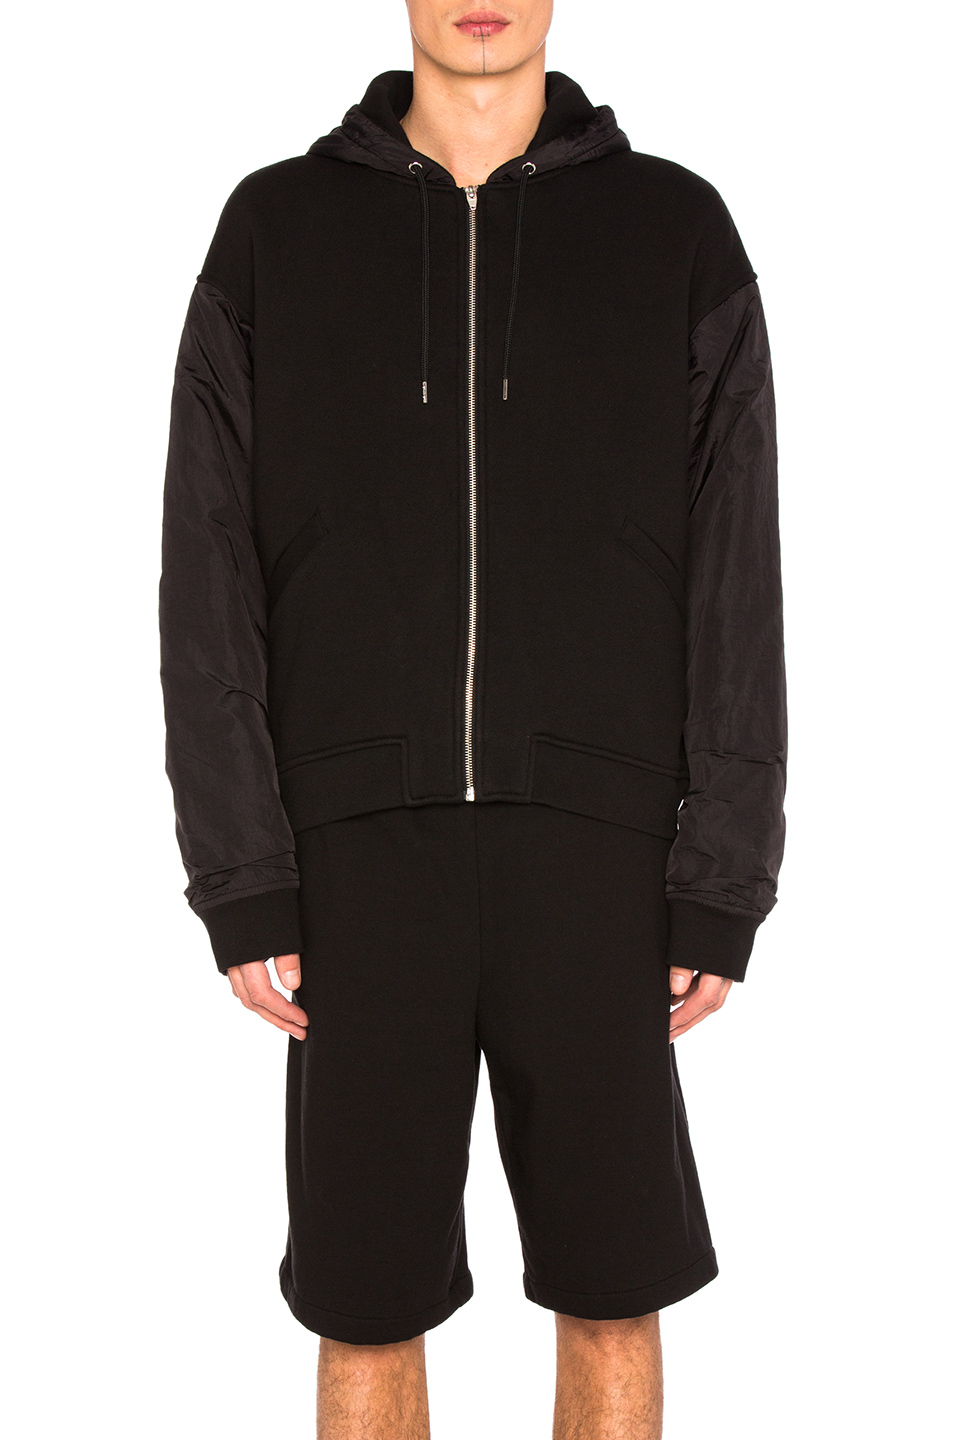 Alexander Wang Nylon Combo Jacket in Black